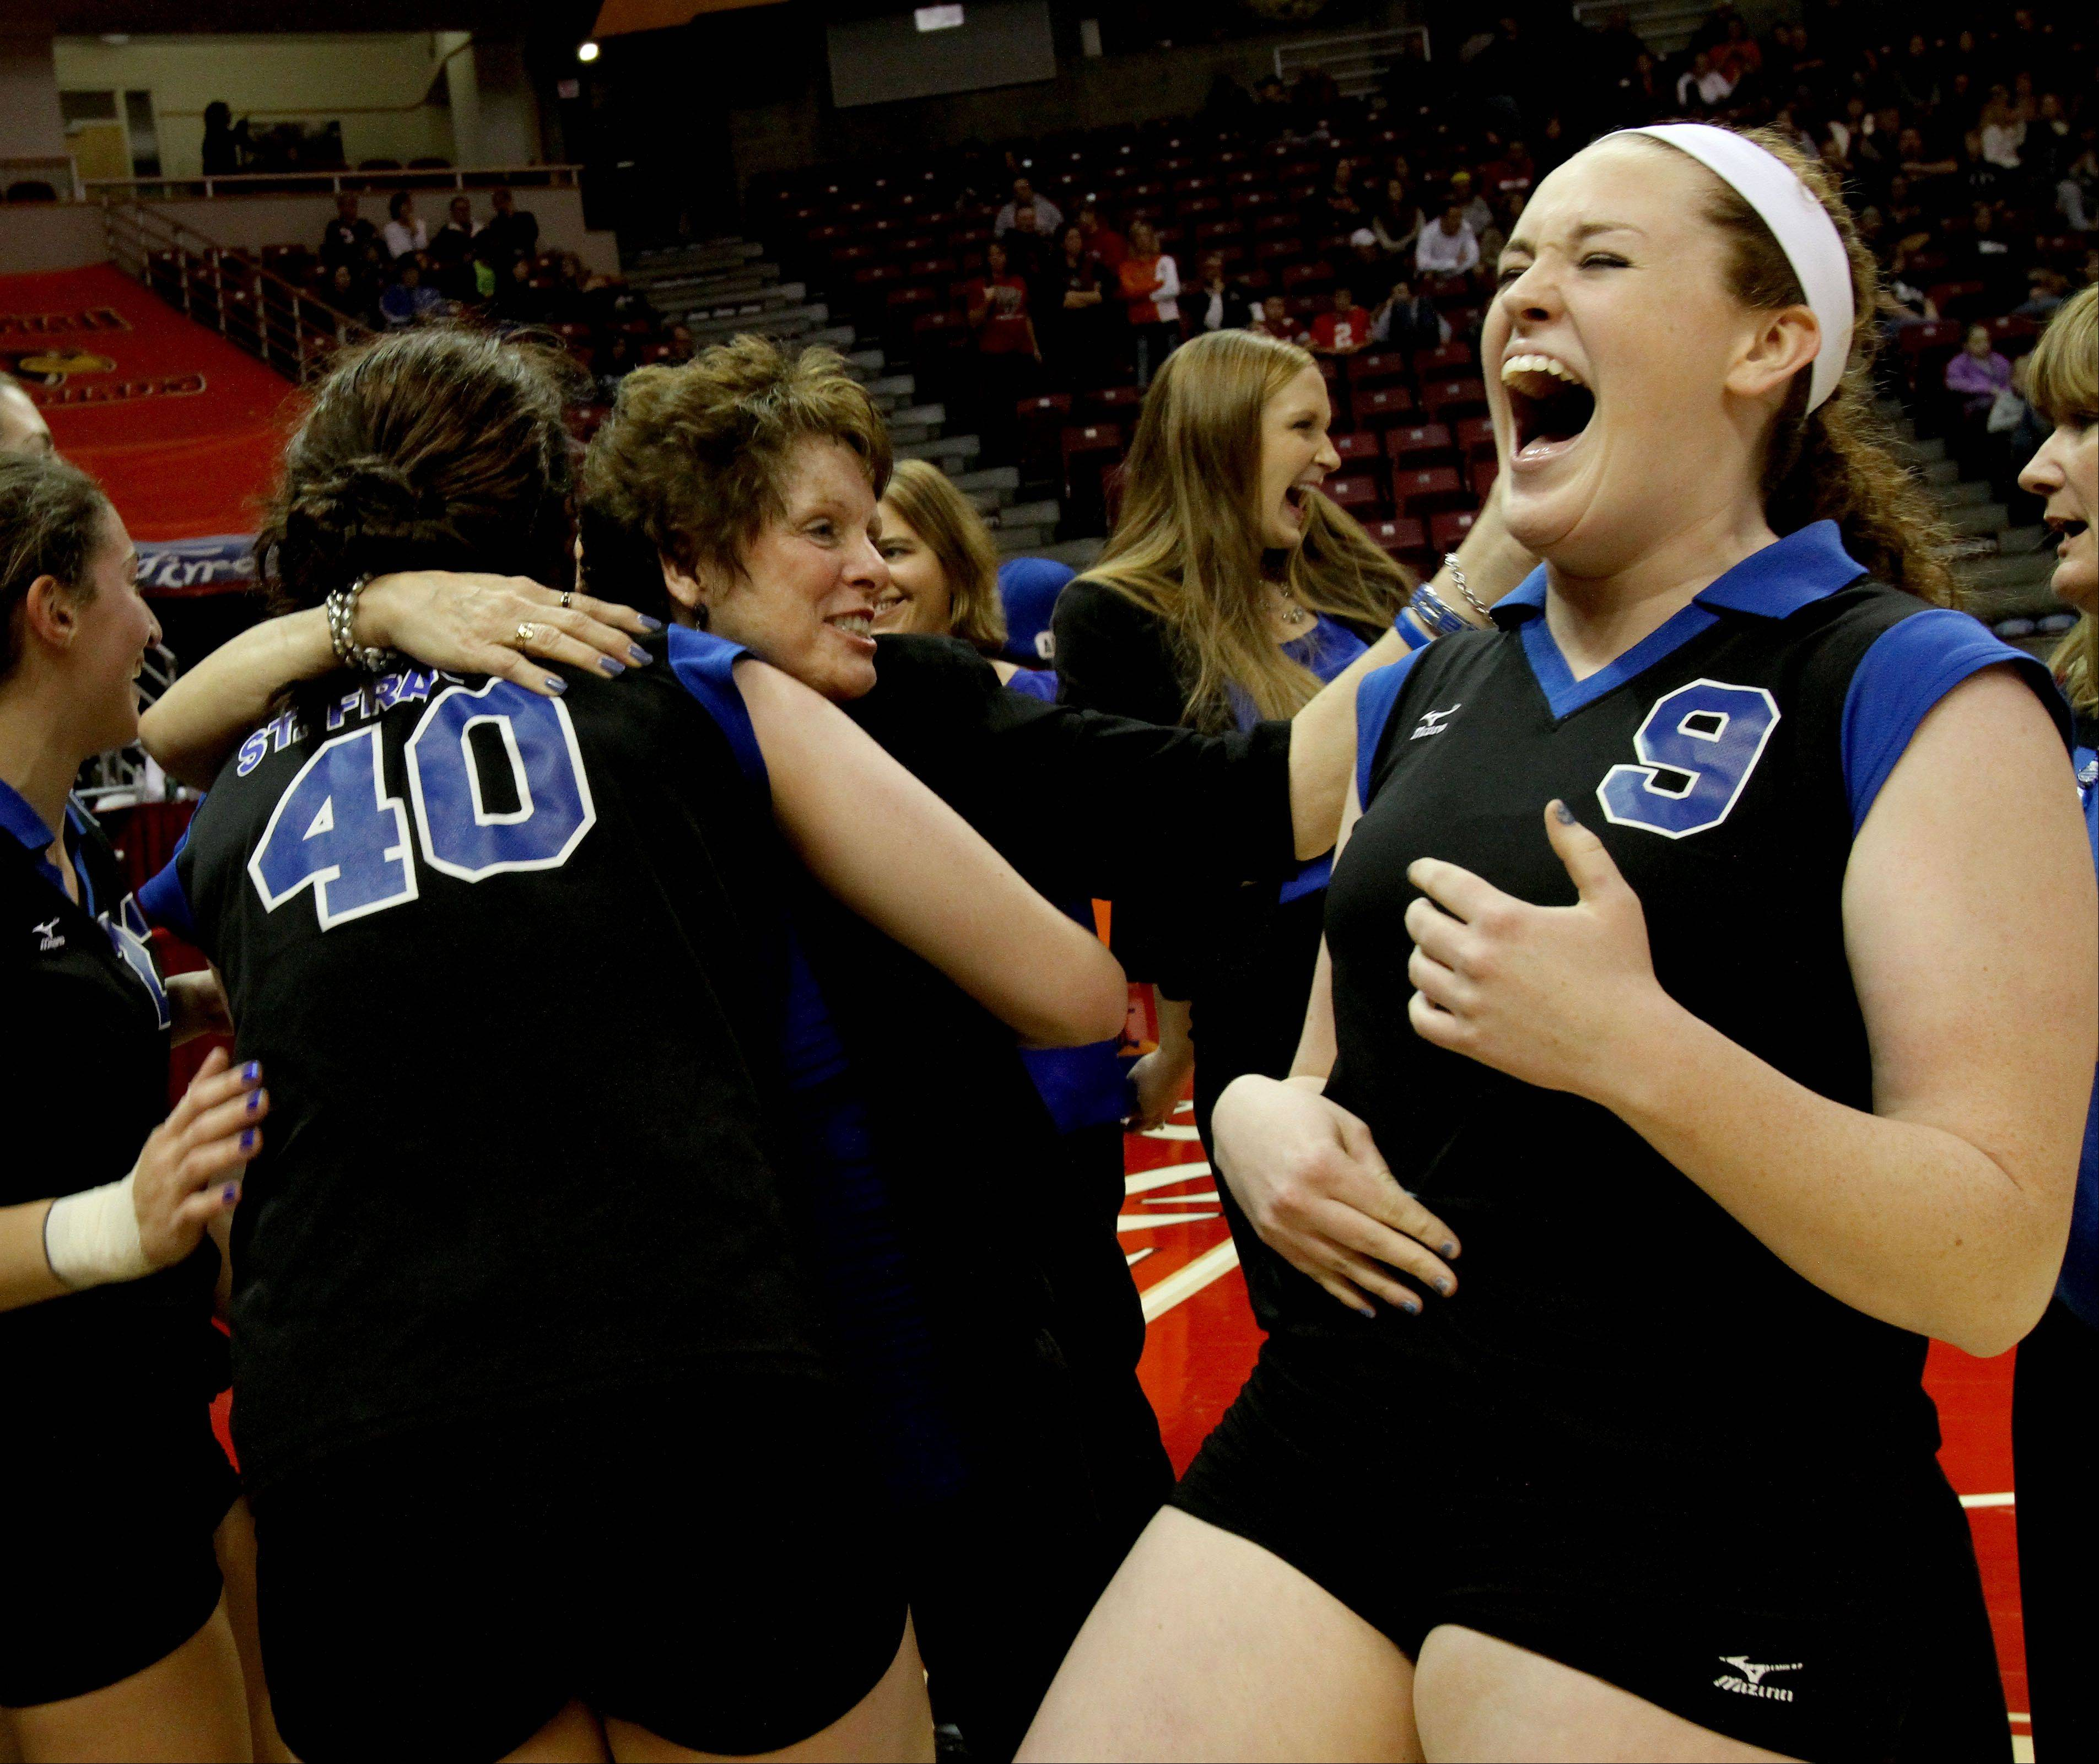 St. Francis coach Peg Kopec, center, hugs her players as Sarah Muisenga, right, celebrates after they beat LaSalle-Peru in two games for the Class 3A championship in girls volleyball on Saturday in Normal.